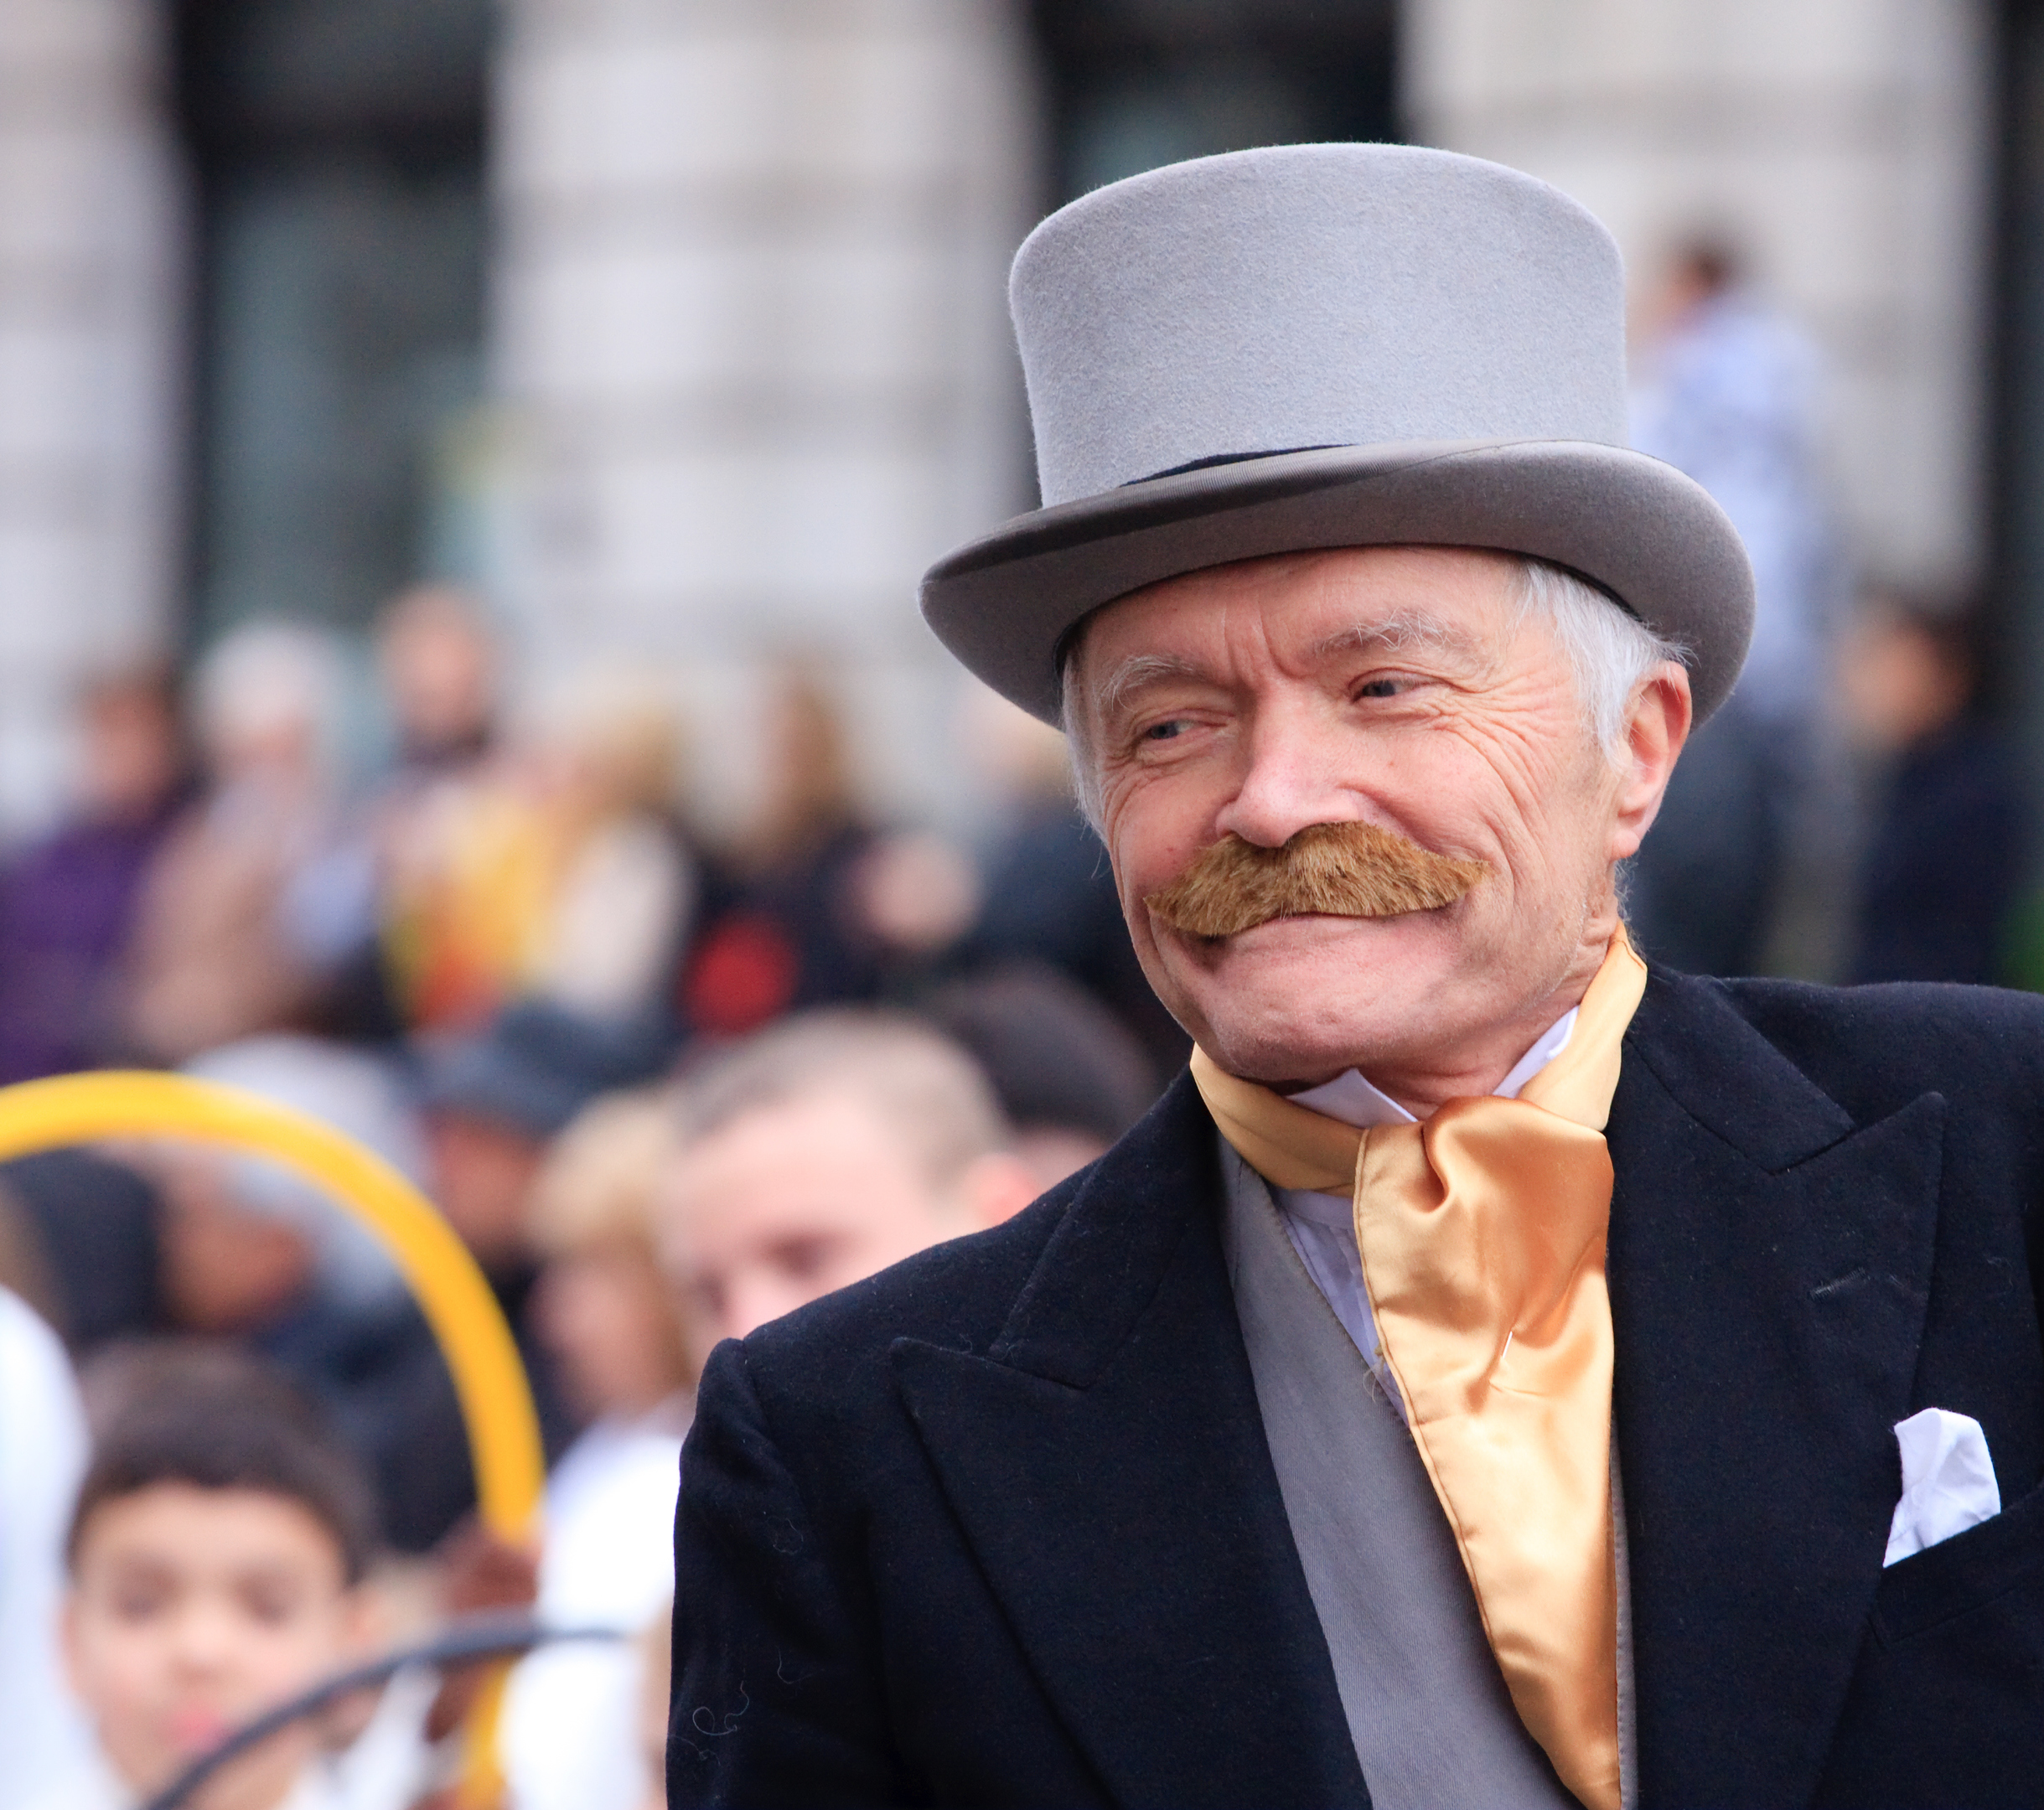 """London, United Kingdom - January 01, 2012: A man dressed up as a Victorian gentleman at the New Year's Day parade in London. On The Mall."""